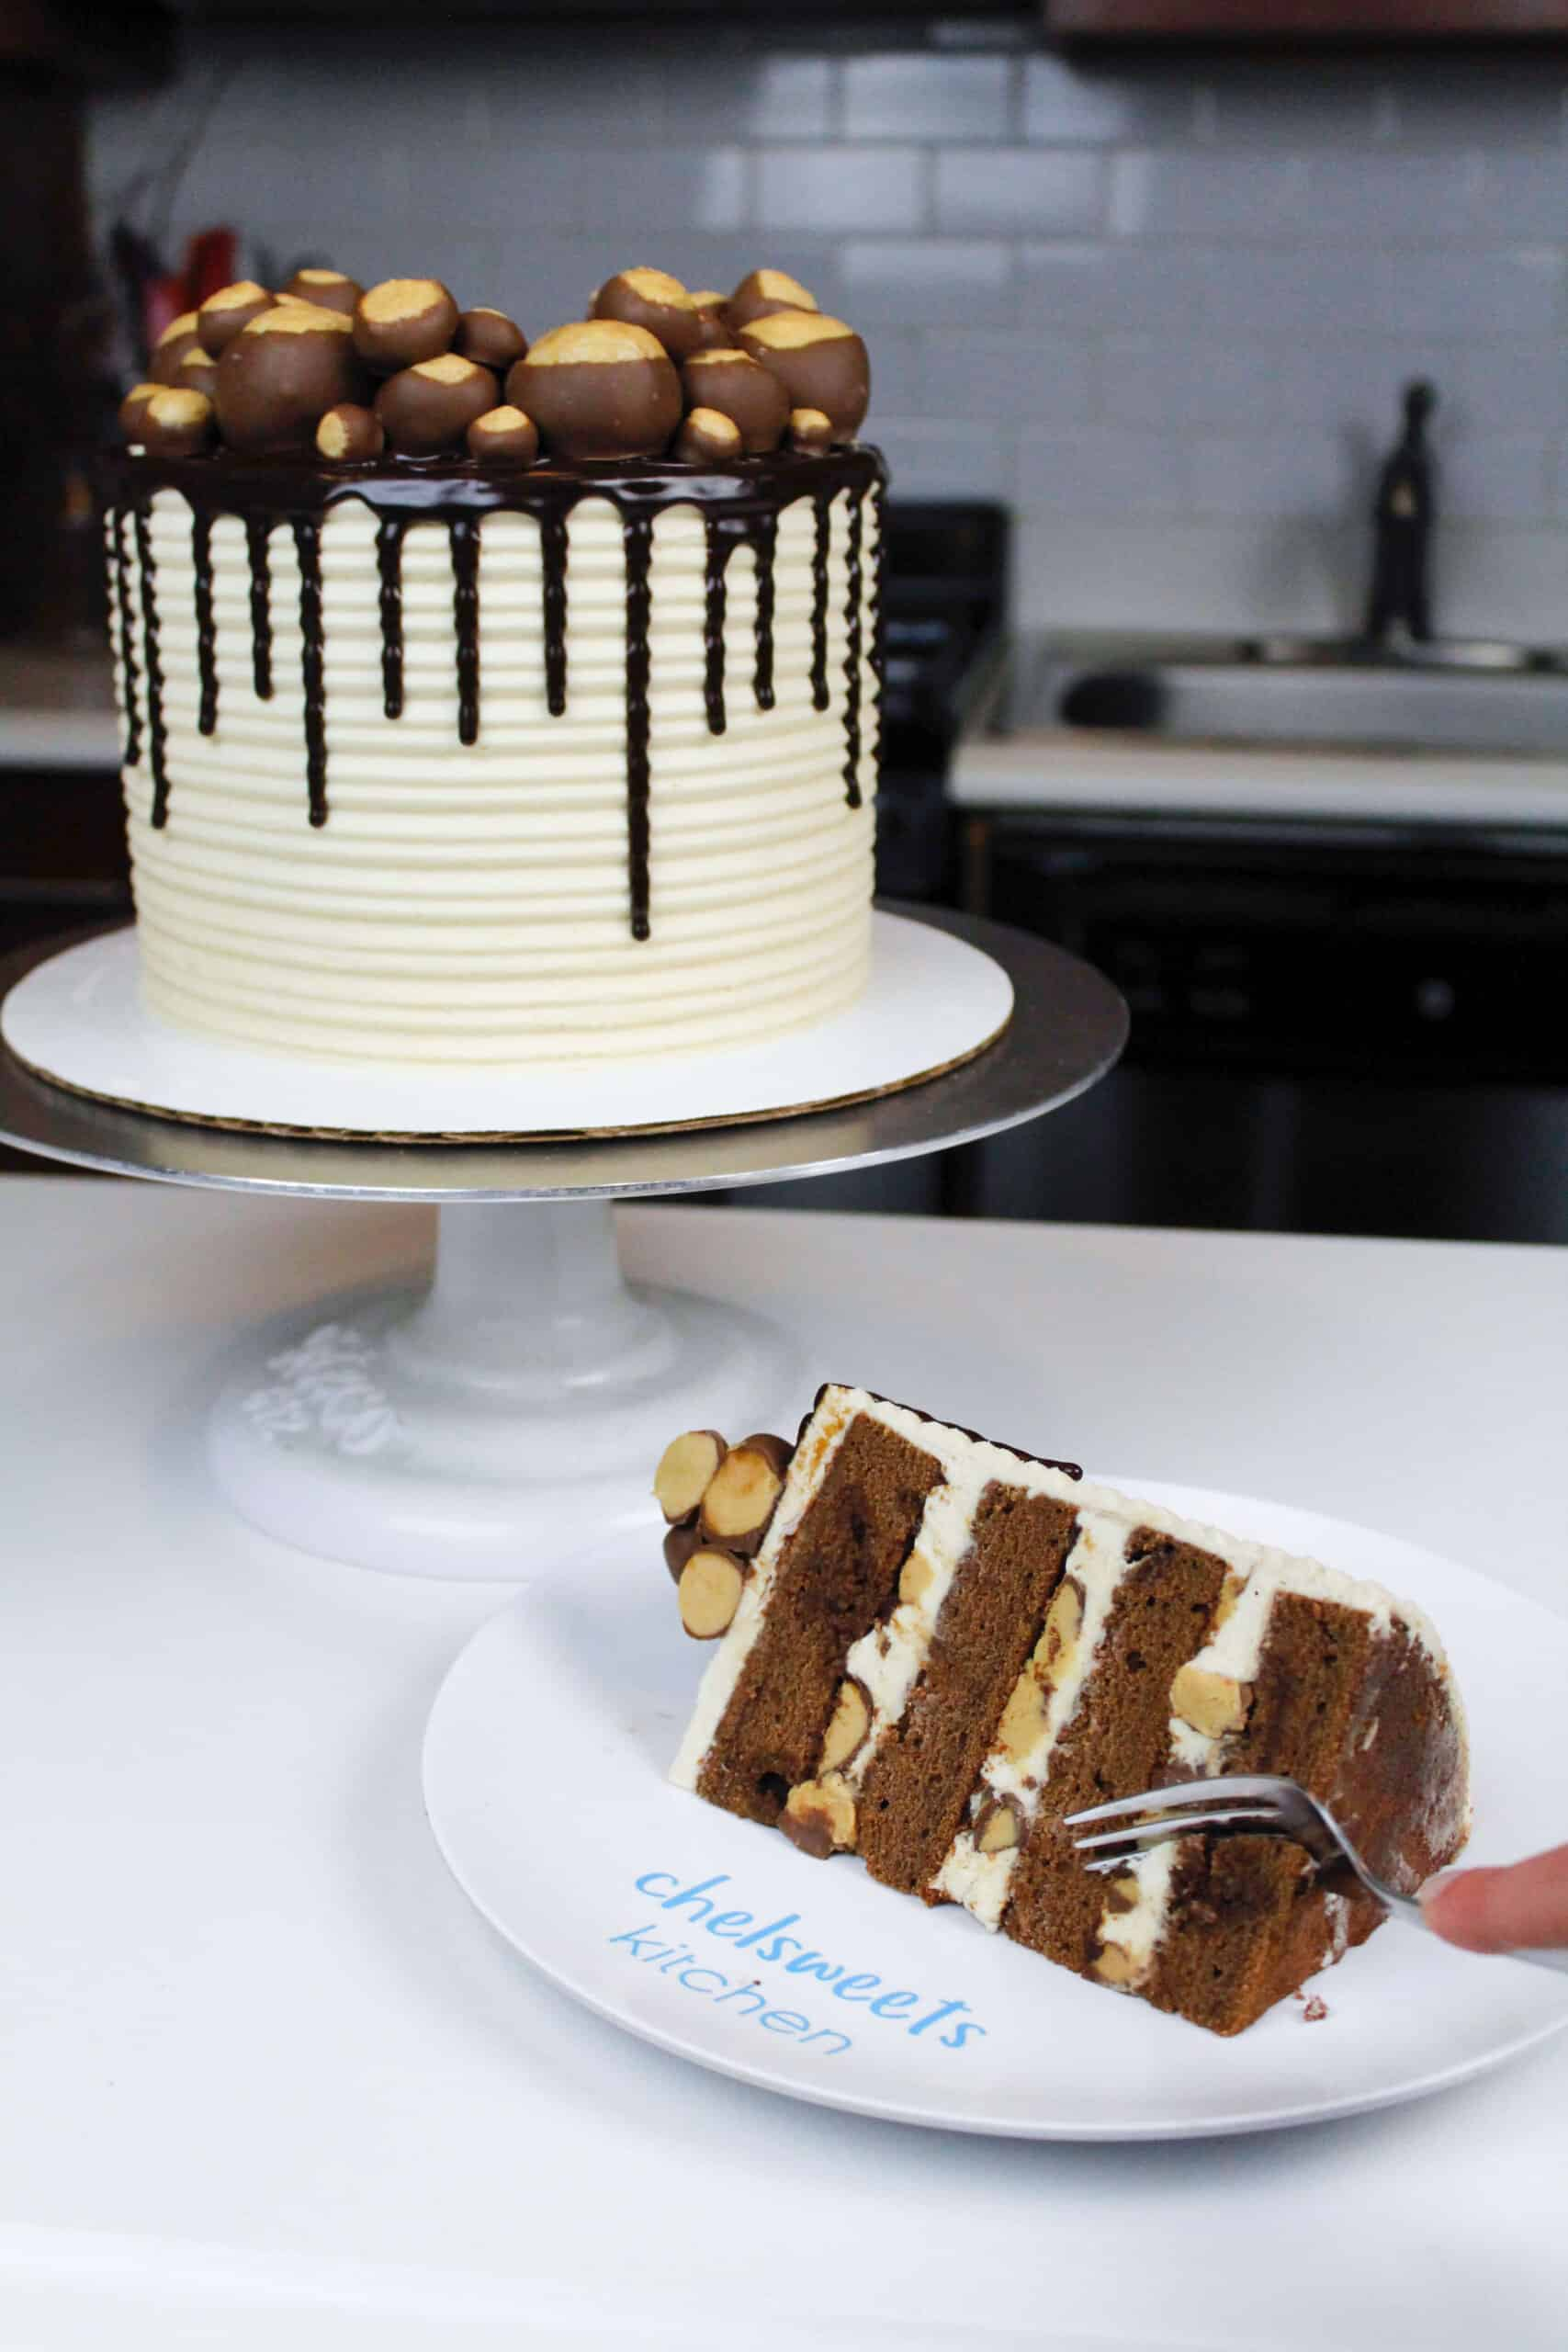 image of buckeye cake sliced with peanut butter buttercream